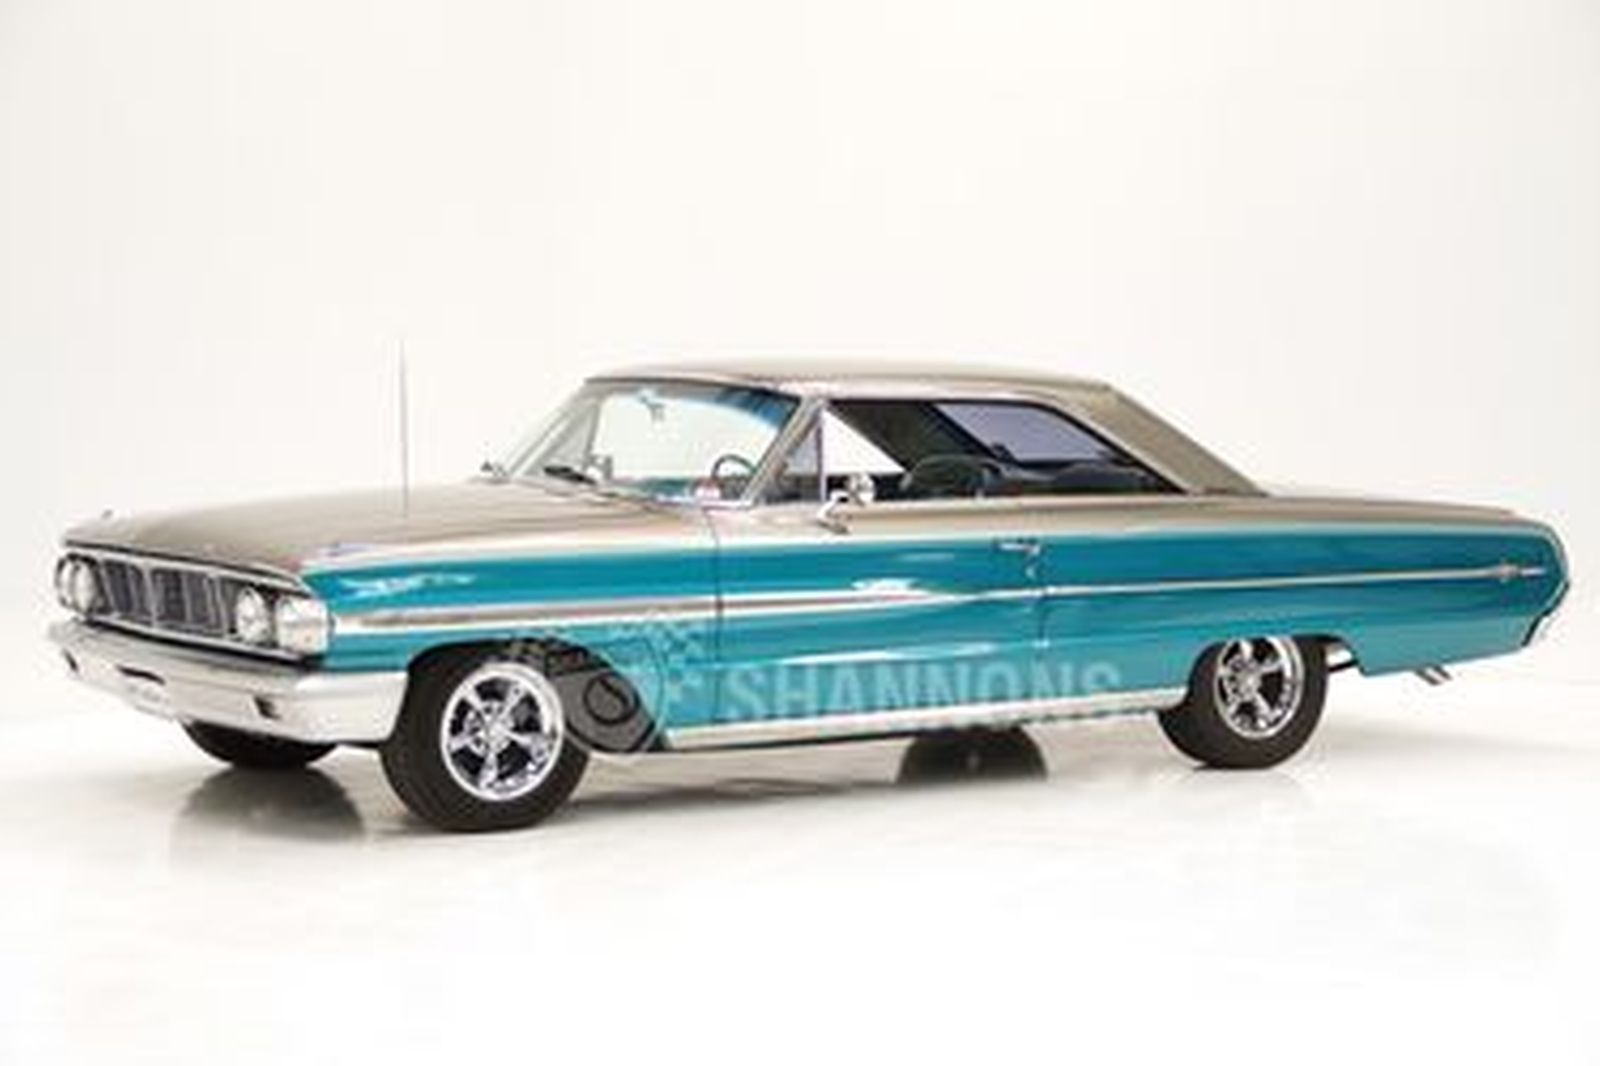 Ford Galaxie '460 Enhanced' Coupe (LHD)